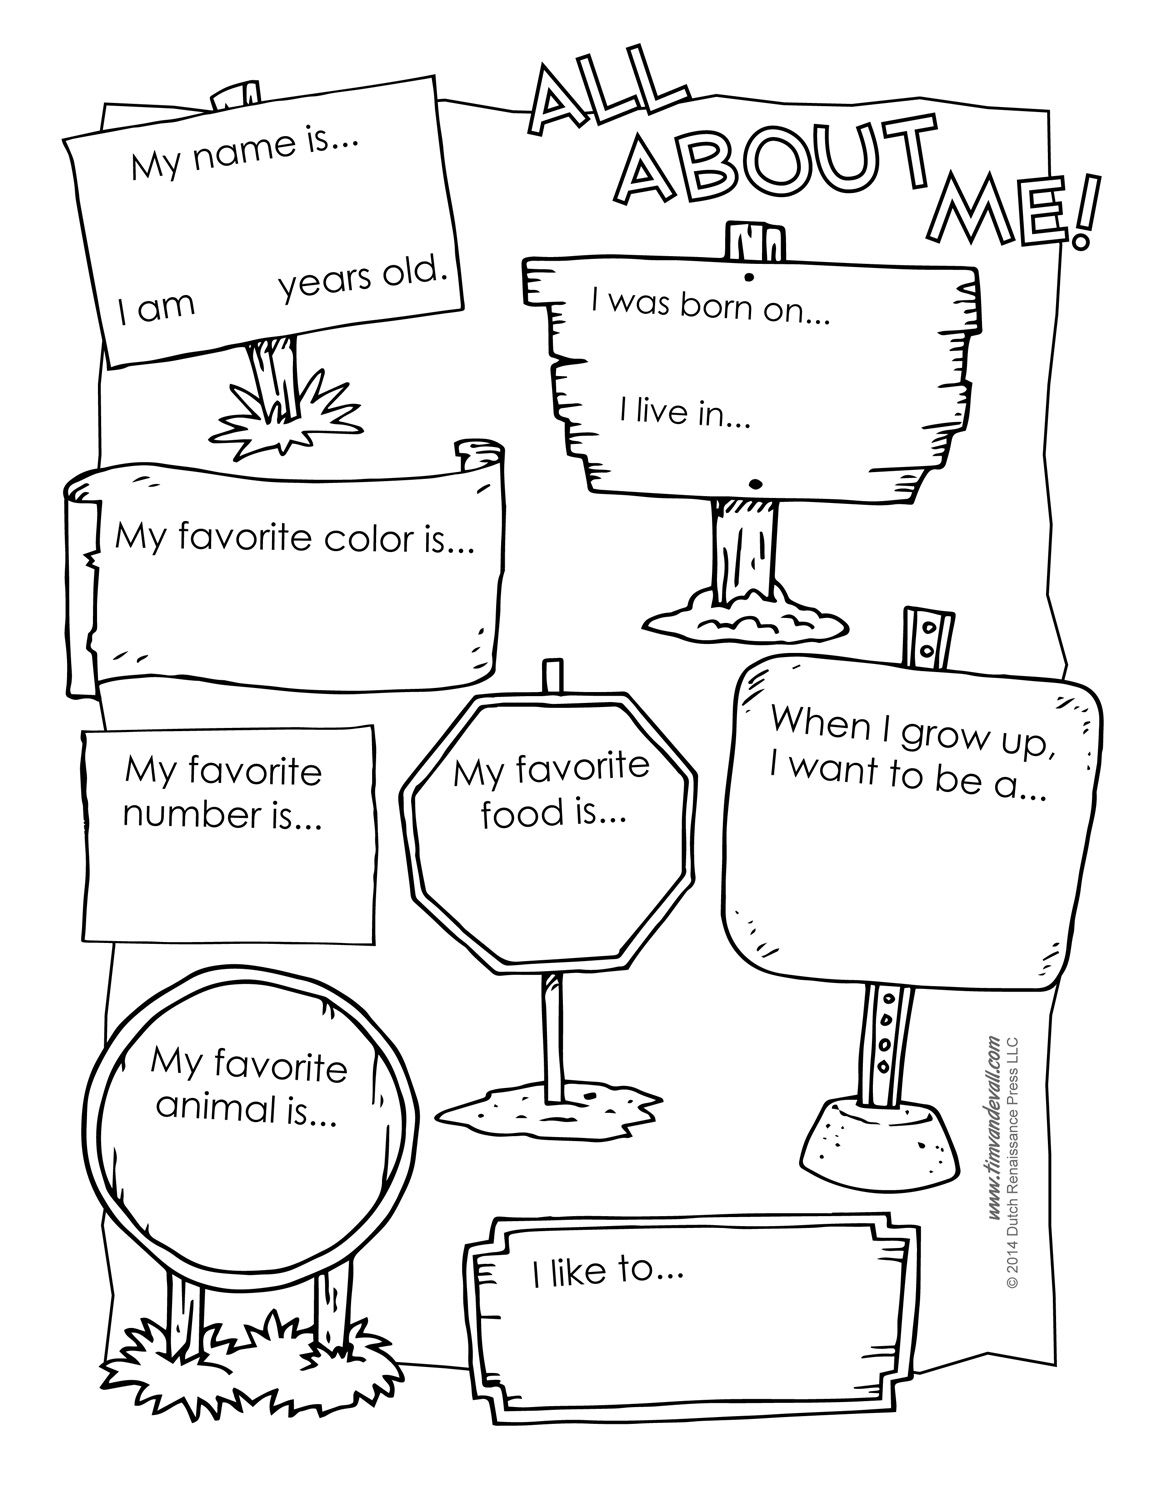 All About Me Free Workshet … | Social Emotional Learning | All A… | All About Me Worksheet Preschool Printable